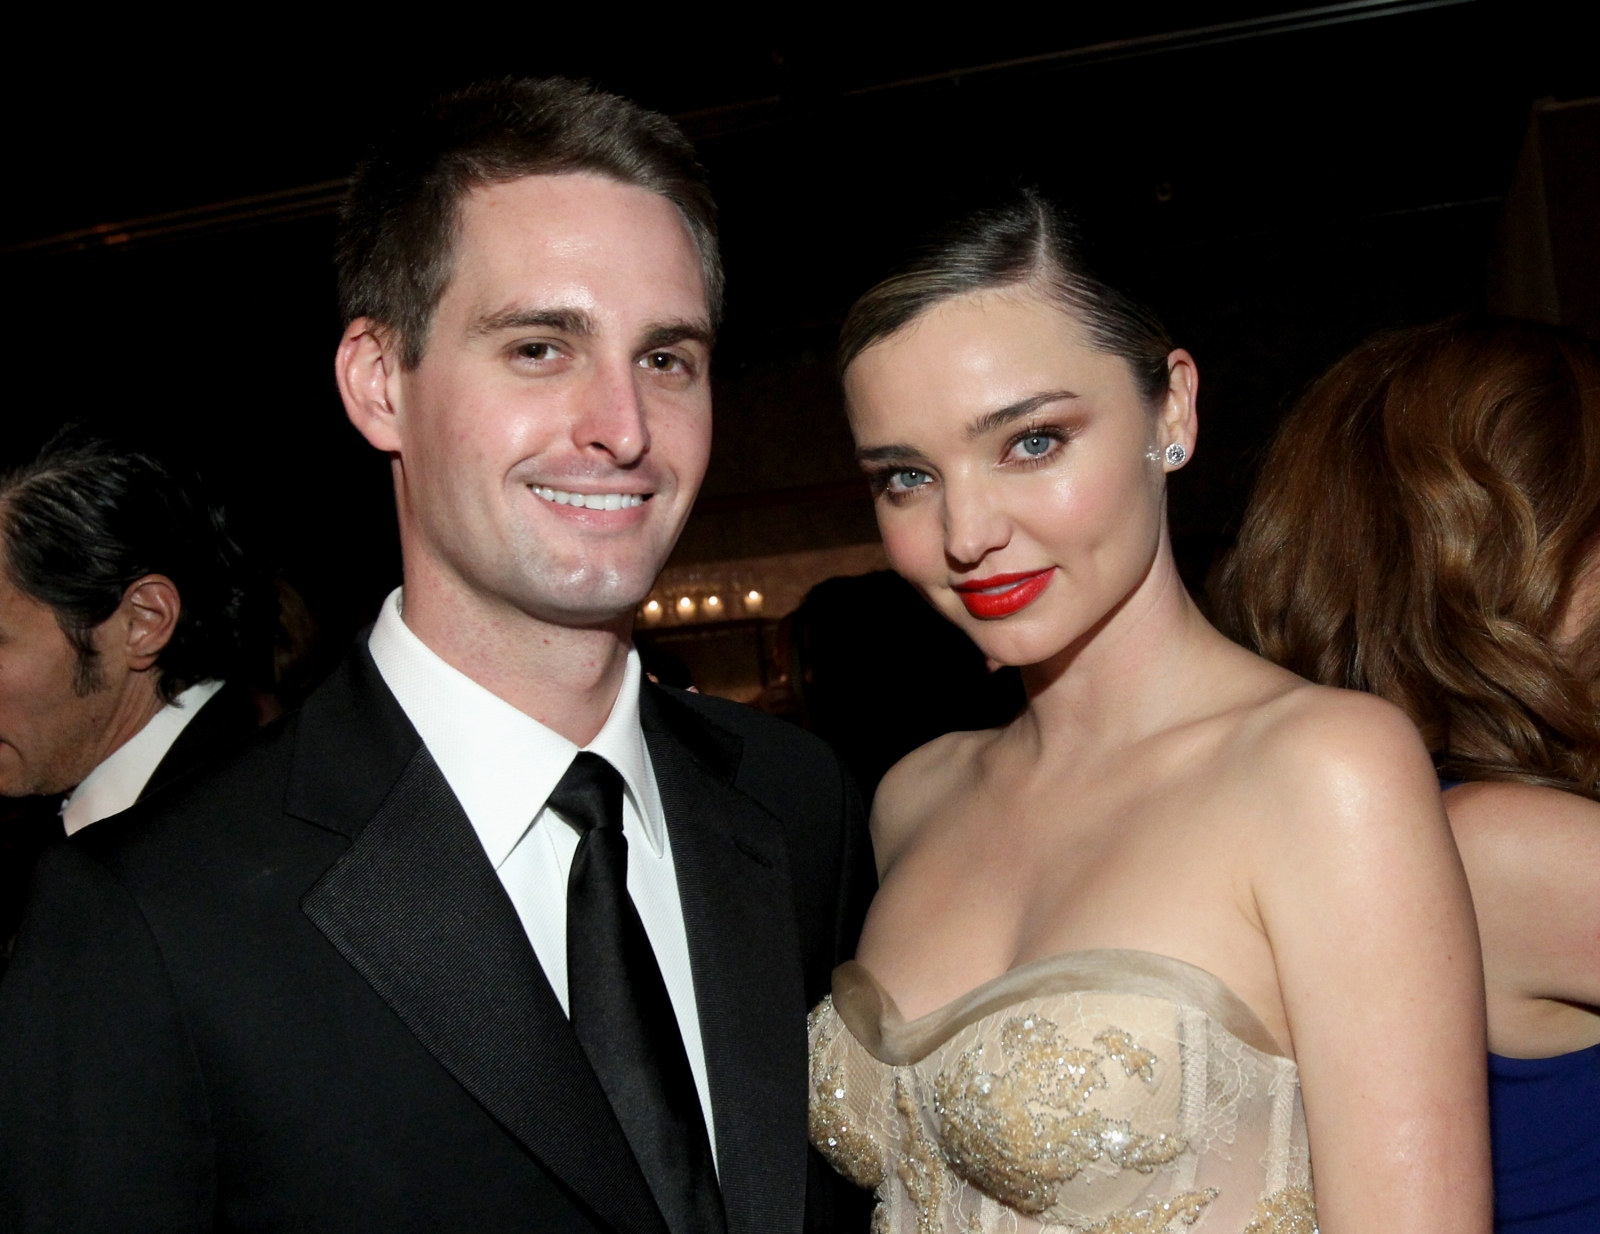 Miranda Kerr Reveals Her Stunning Wedding Dress!